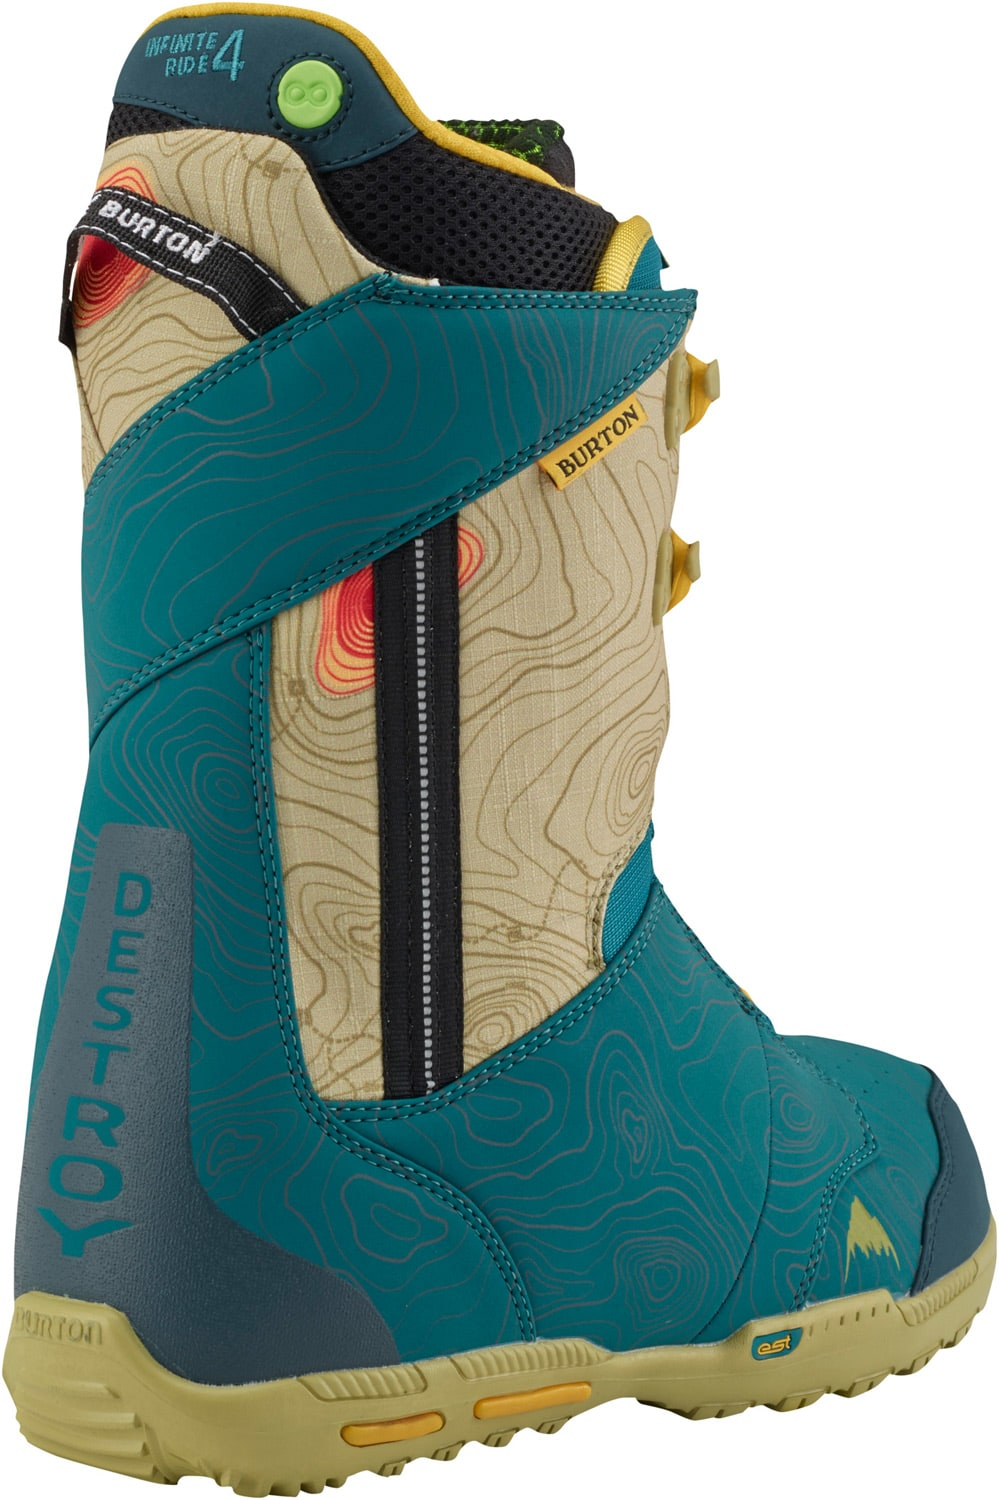 On sale burton rampant ltd snowboard boots up to 45 off for Housse burton snowboard